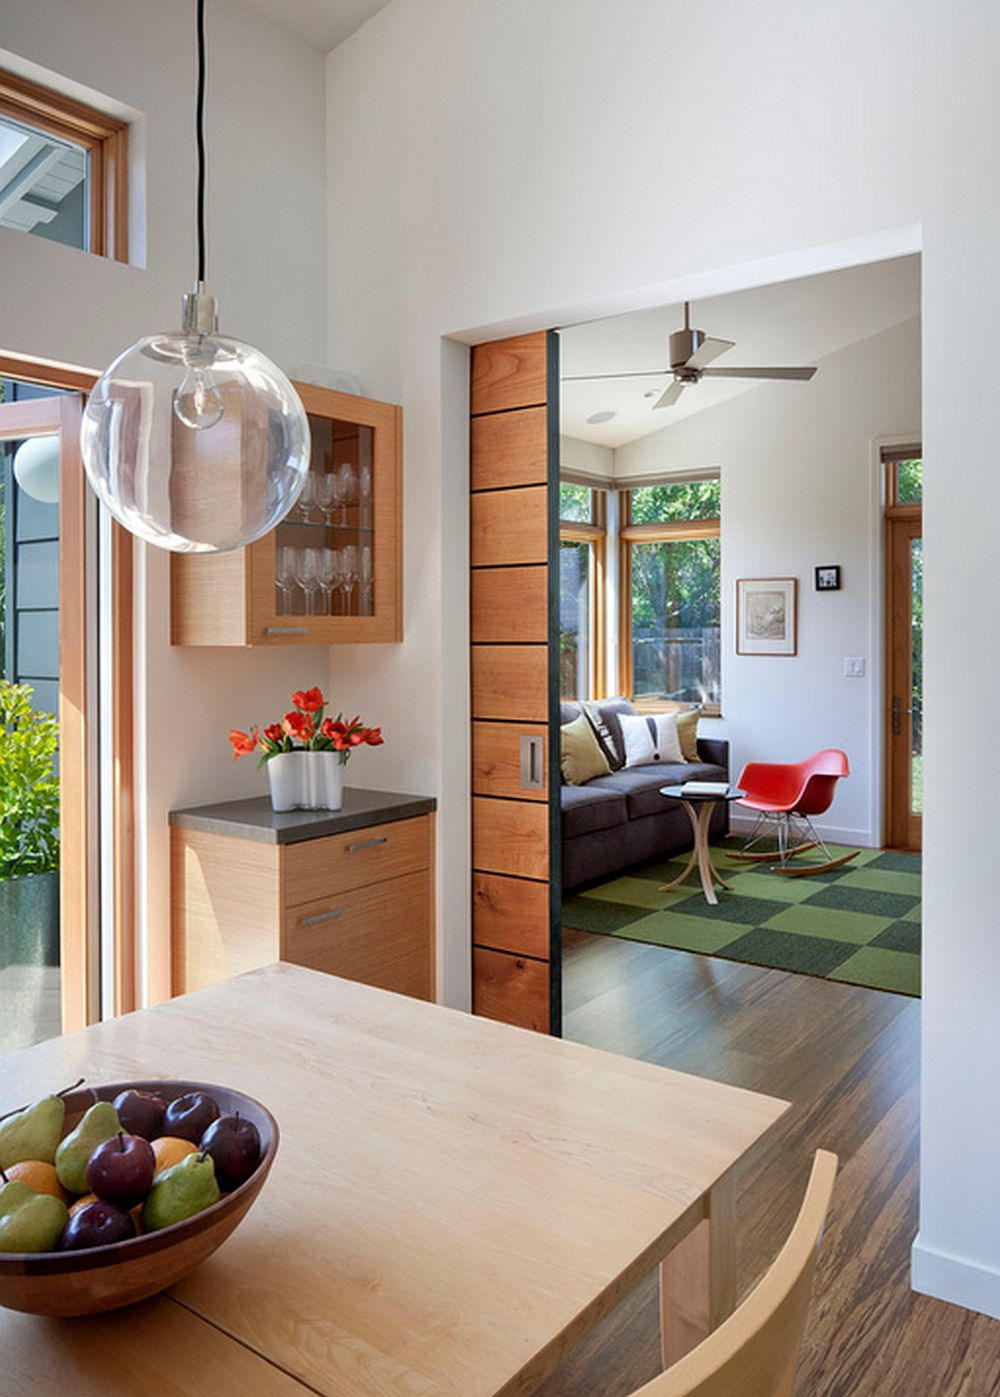 adelaparvu.com despre casa pentru familie, arhitect Ana Williamson, Foto David Wakely Photography  (7)